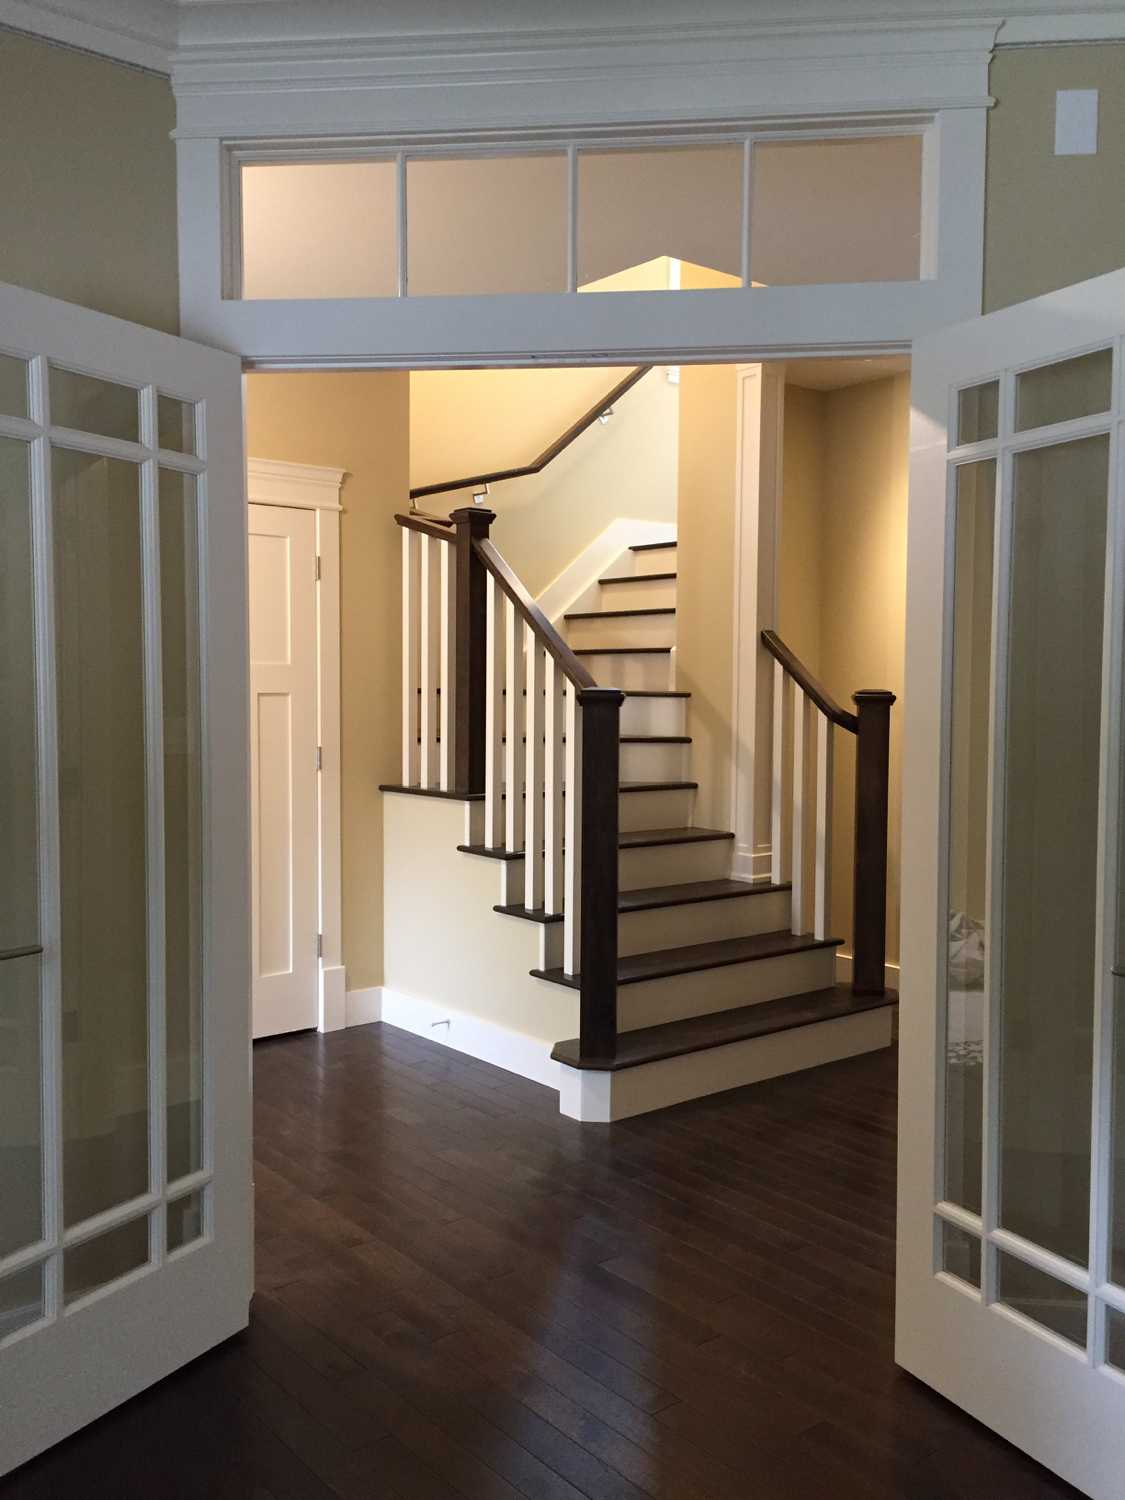 Staircase from Living room